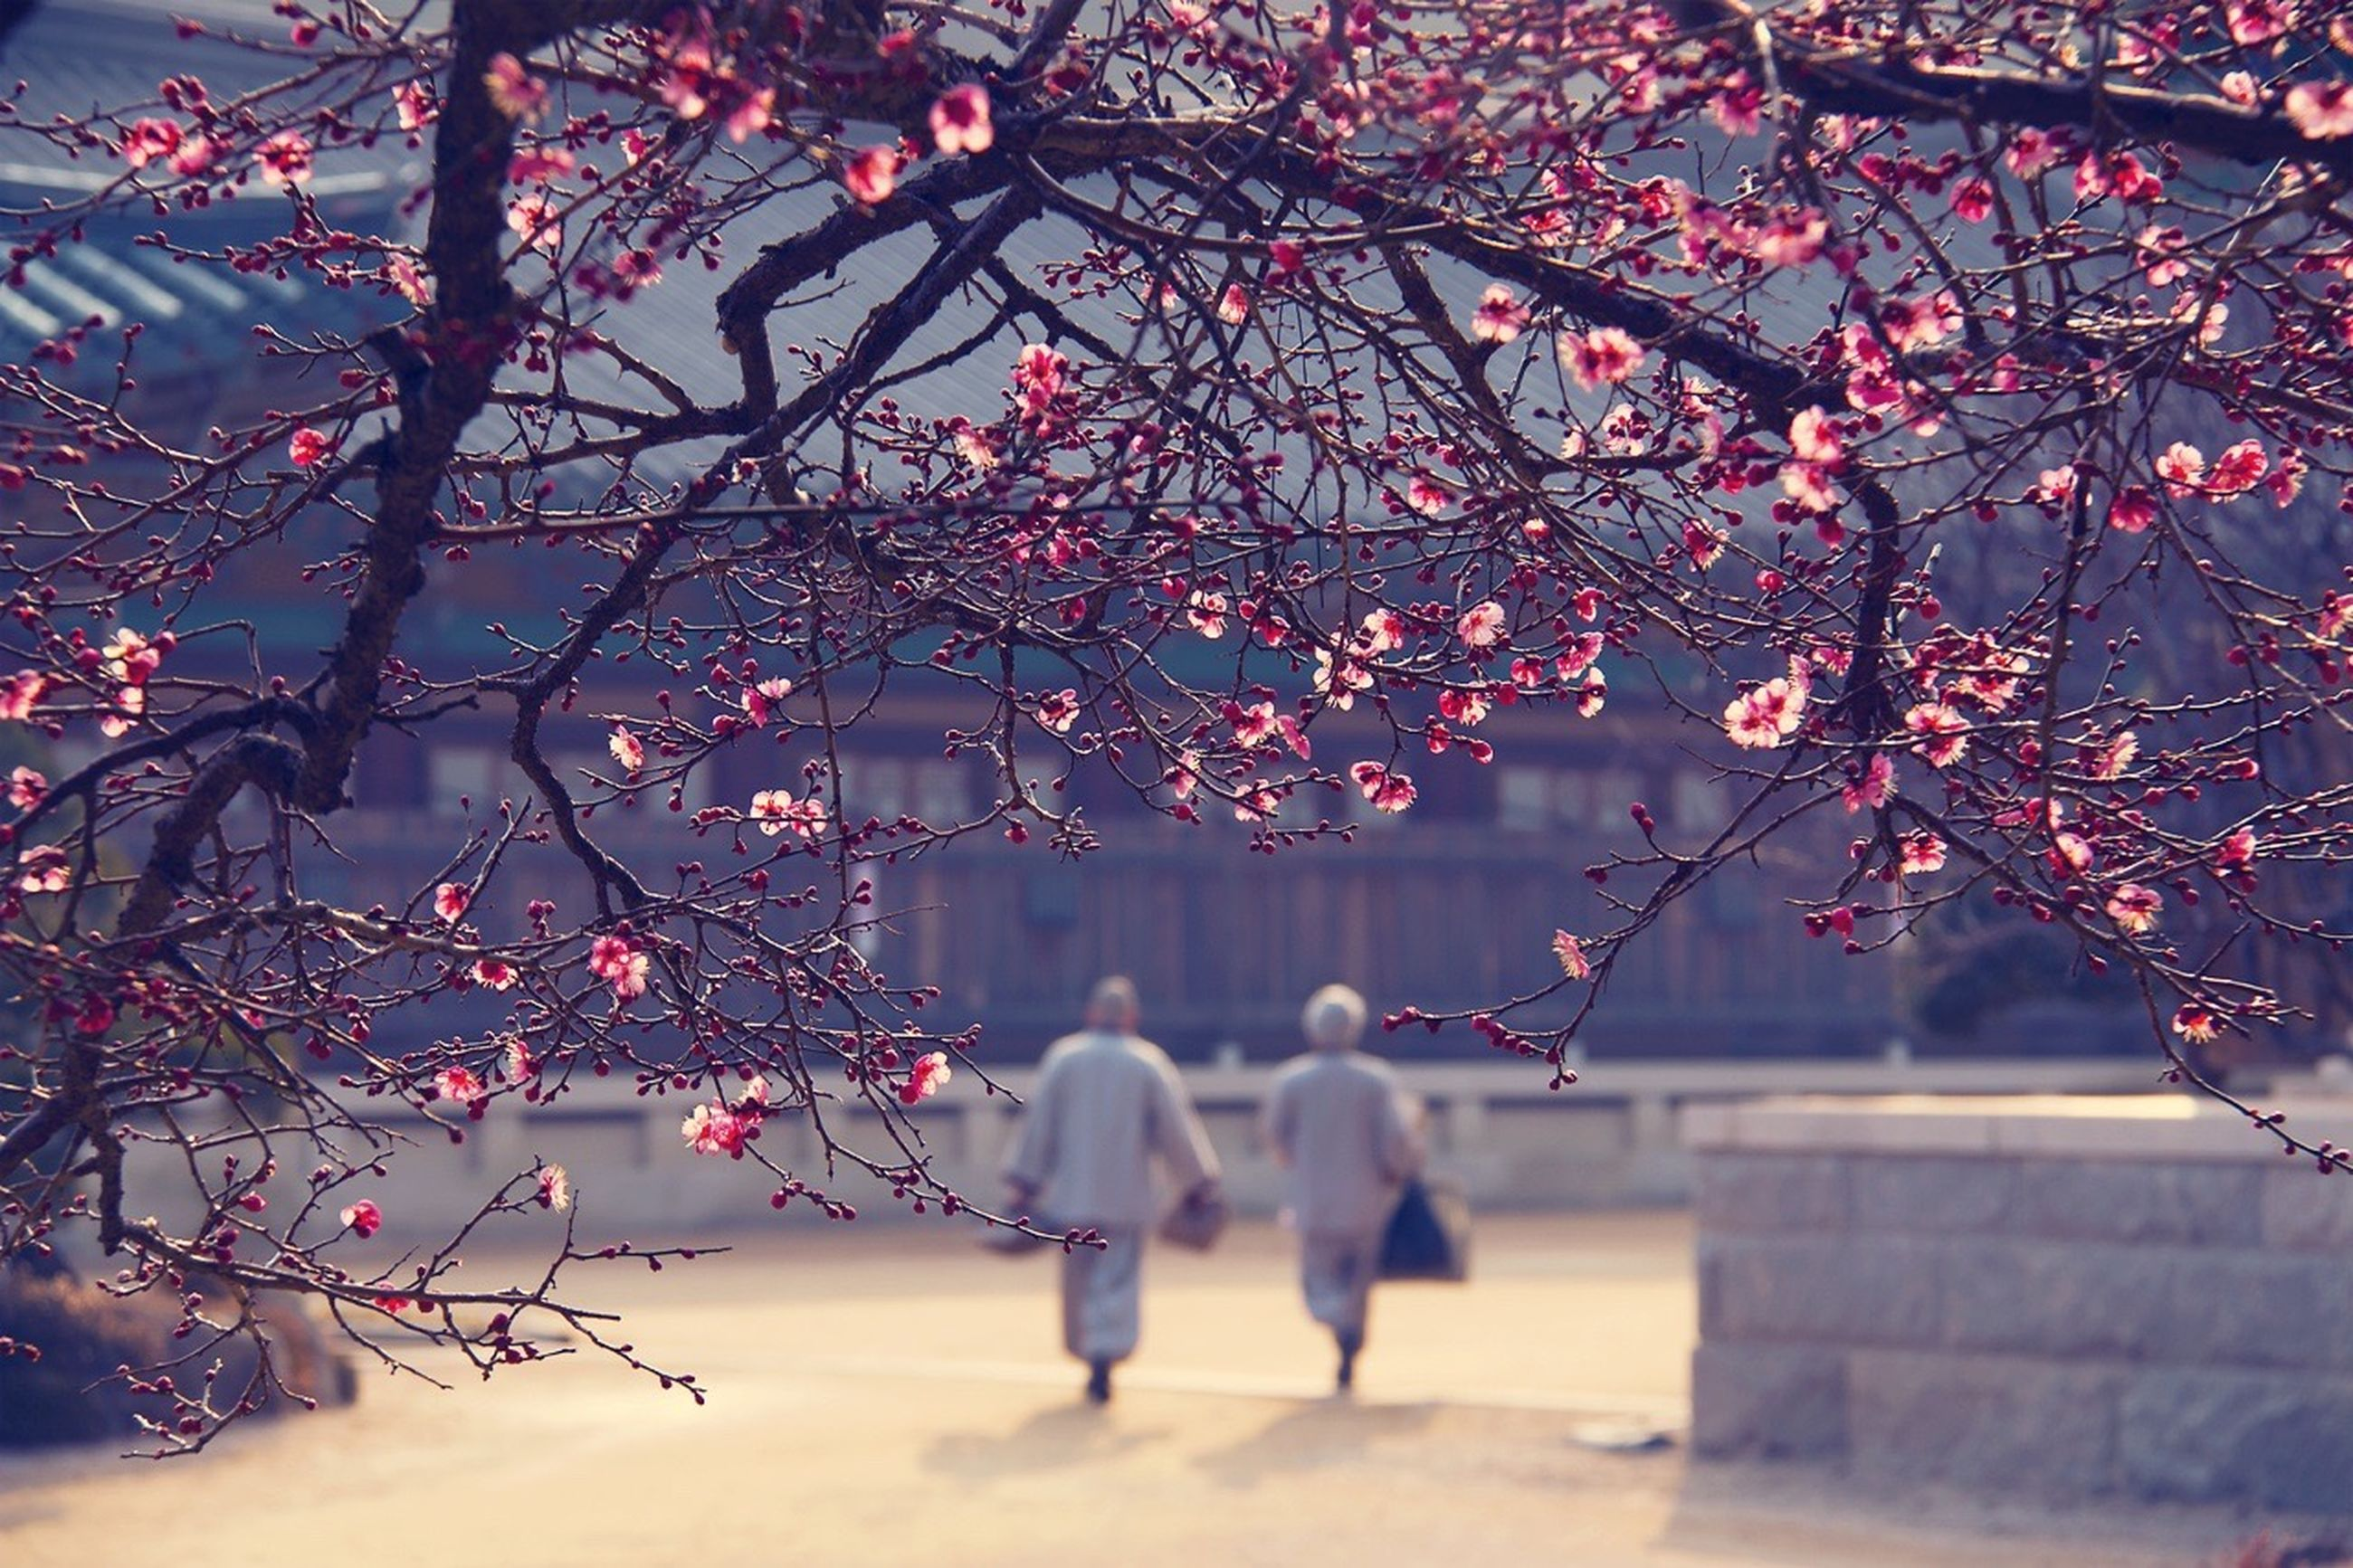 tree, branch, flower, cherry tree, cherry blossom, pink color, outdoors, person, nature, day, focus on foreground, decoration, growth, built structure, low angle view, lifestyles, hanging, walking, men